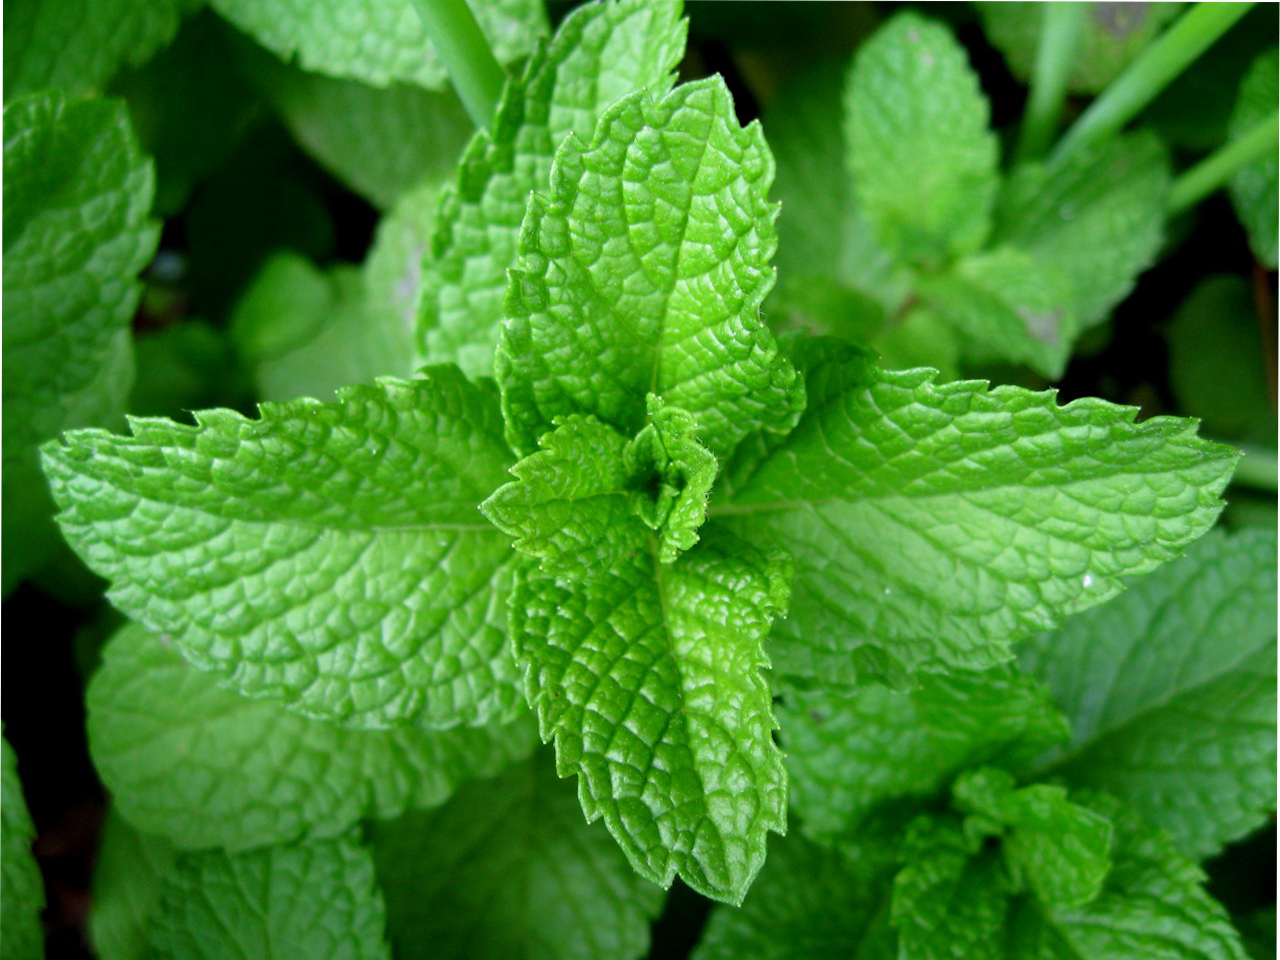 Pippermint leaves